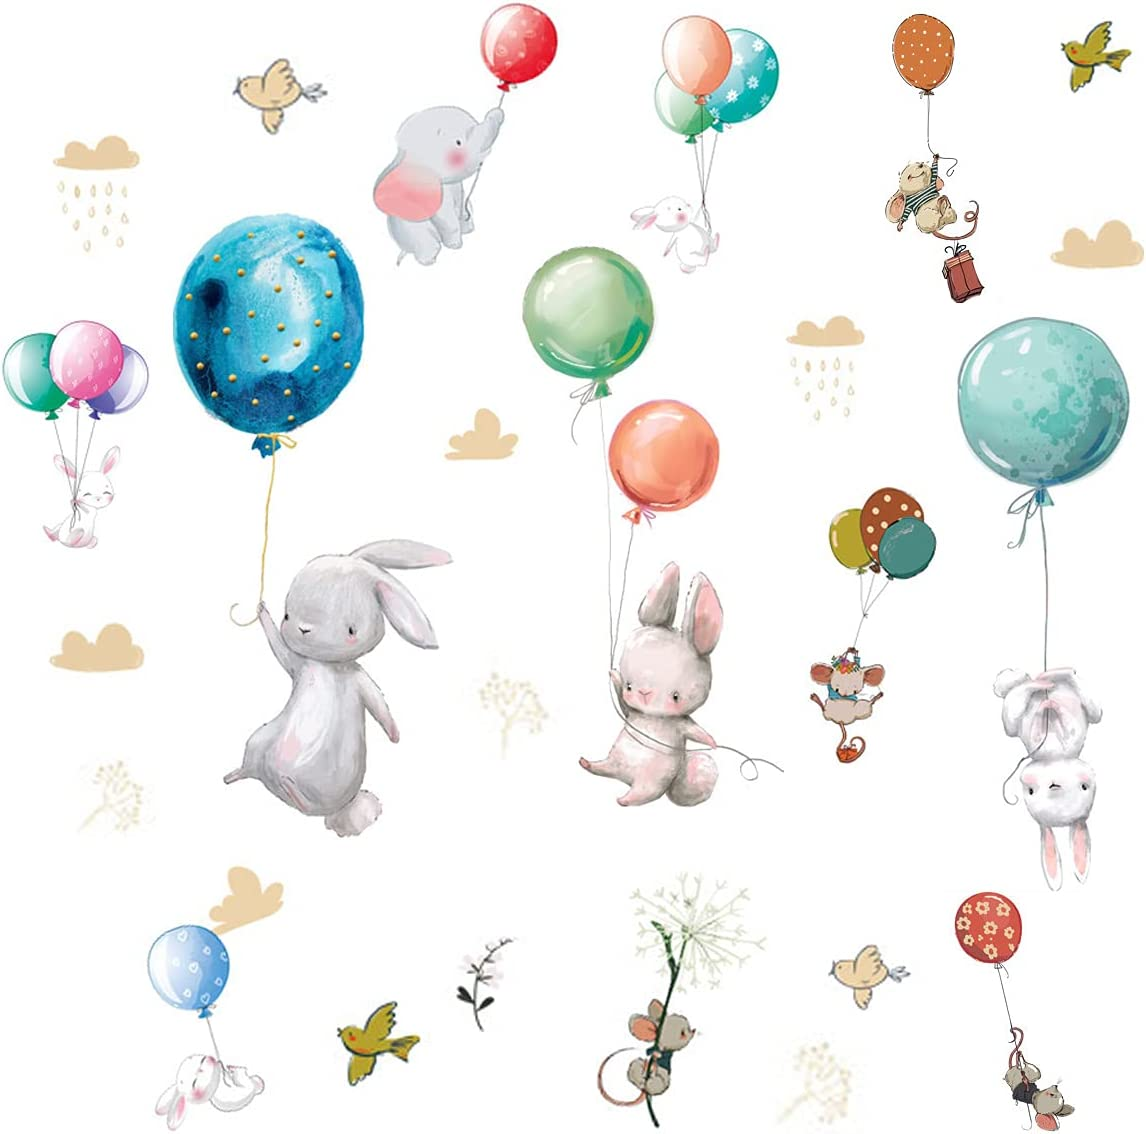 Colorful Balloon Flying Animals Wall Decals, Cute Elephant Rabbit Bird Wall Stickers, Removable Peel and Stick Cartoon Animal Neutral Vinyl Wall Decoration for Baby Boy Girl Bedroom - Hot Air Balloon